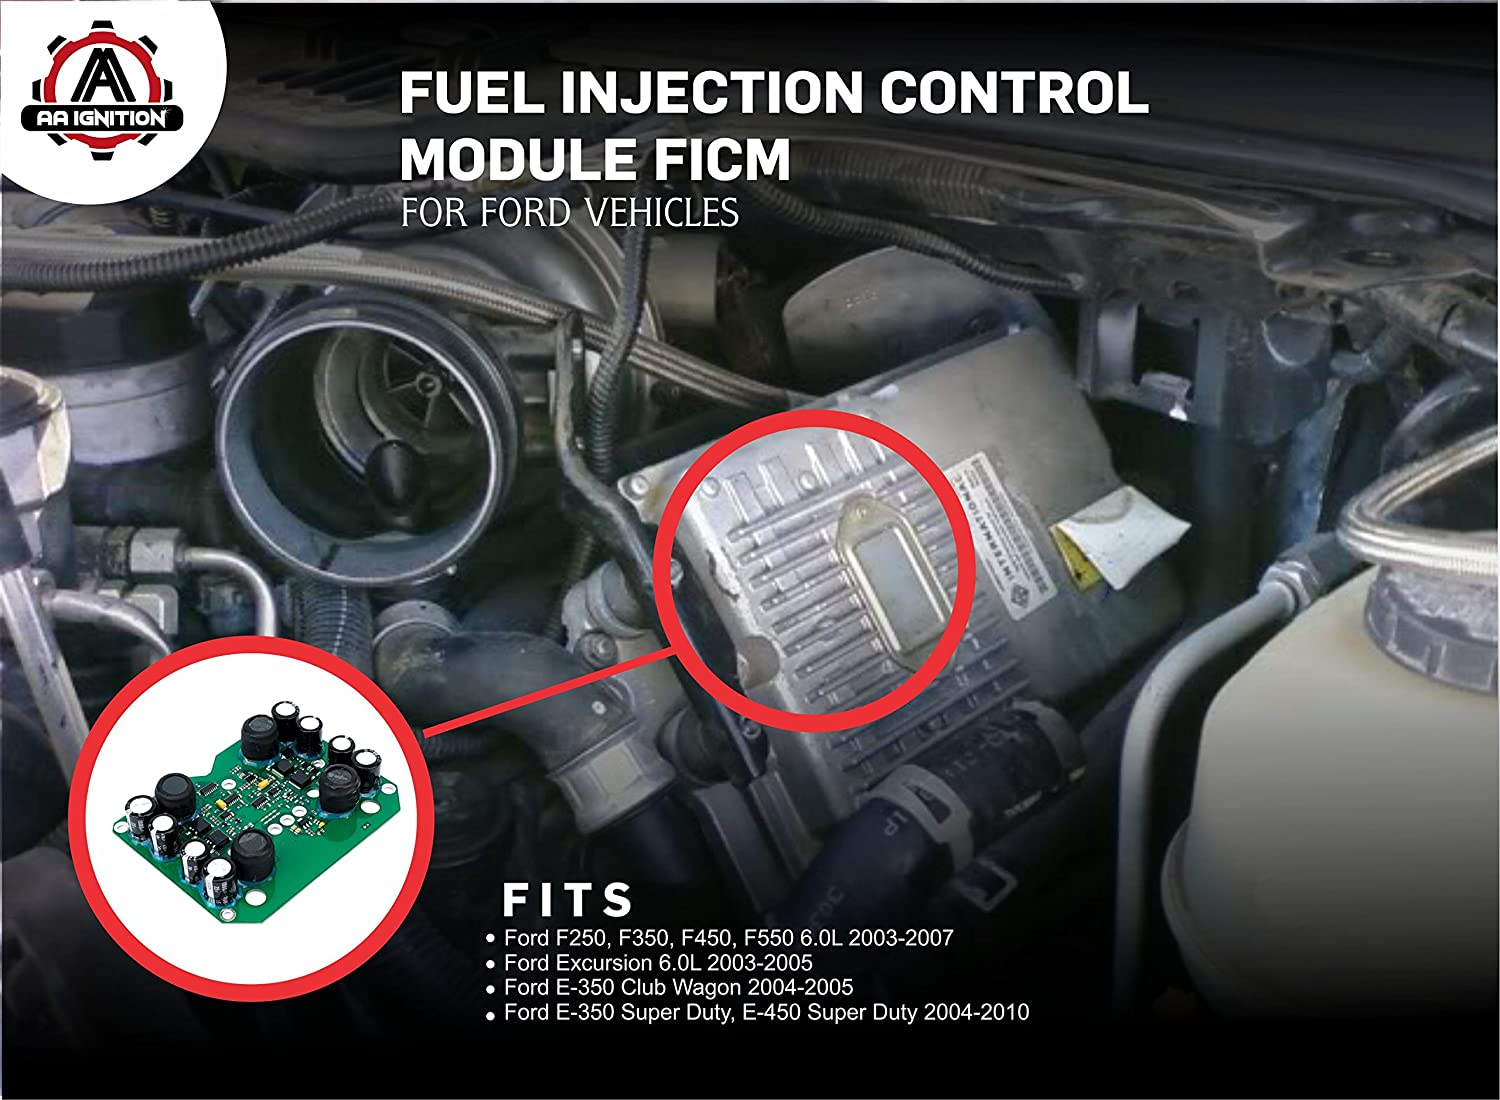 Ficm 60 Powerstroke Fuel Injection Control Module 2006 F350 Filter Fits Ford F250 F450 F550 Excursion 60l Diesel Super Duty Replaces 904 229